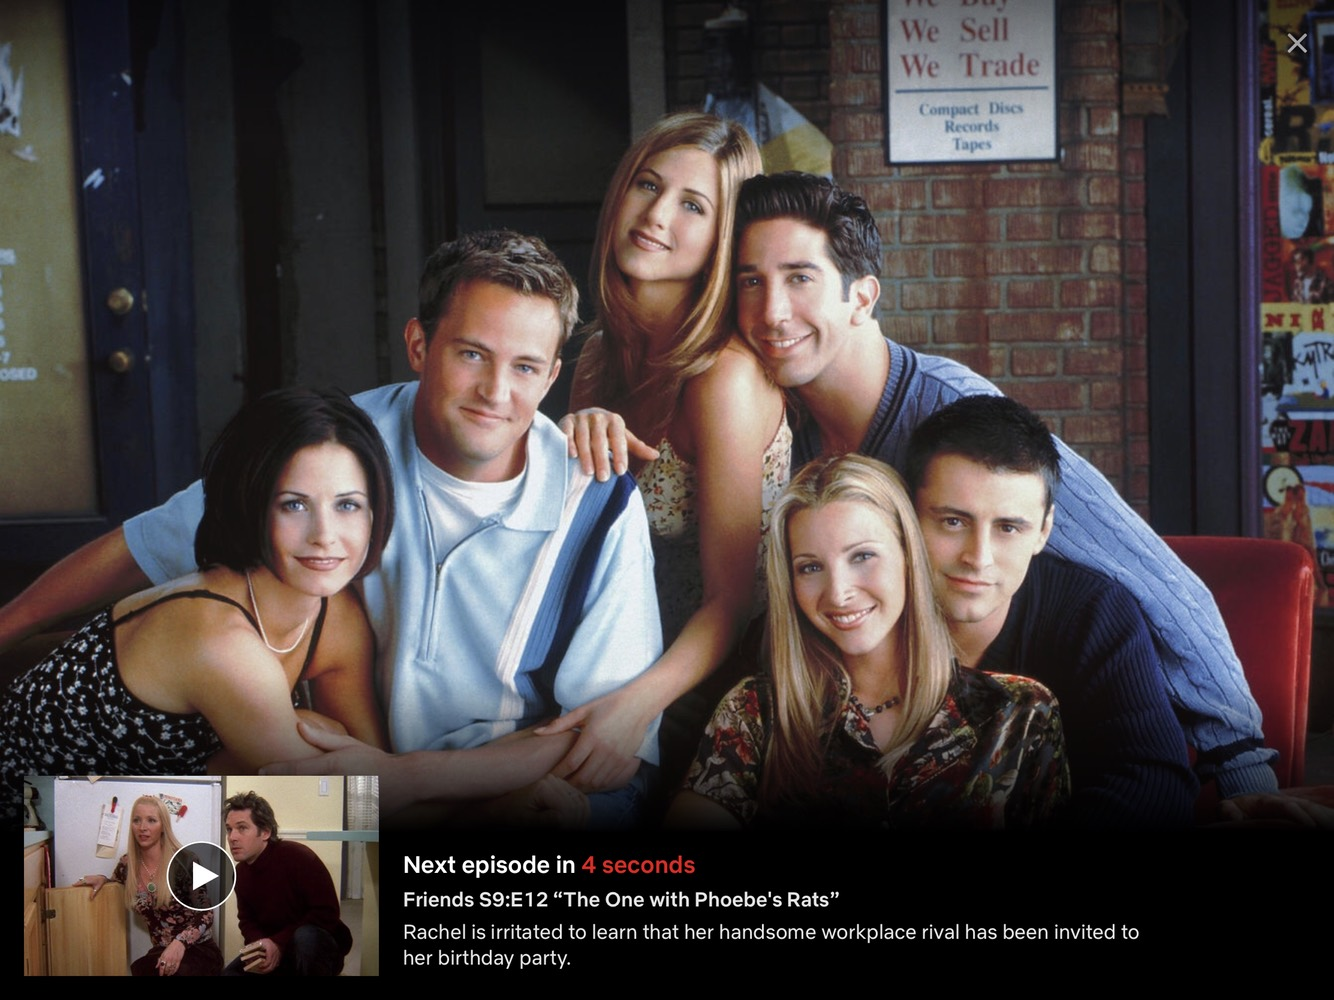 Netflix app shows a group photo of Friends cast, with a thumbnail of the next episode and a countdown to start the next episode with 4 seconds on the clock.